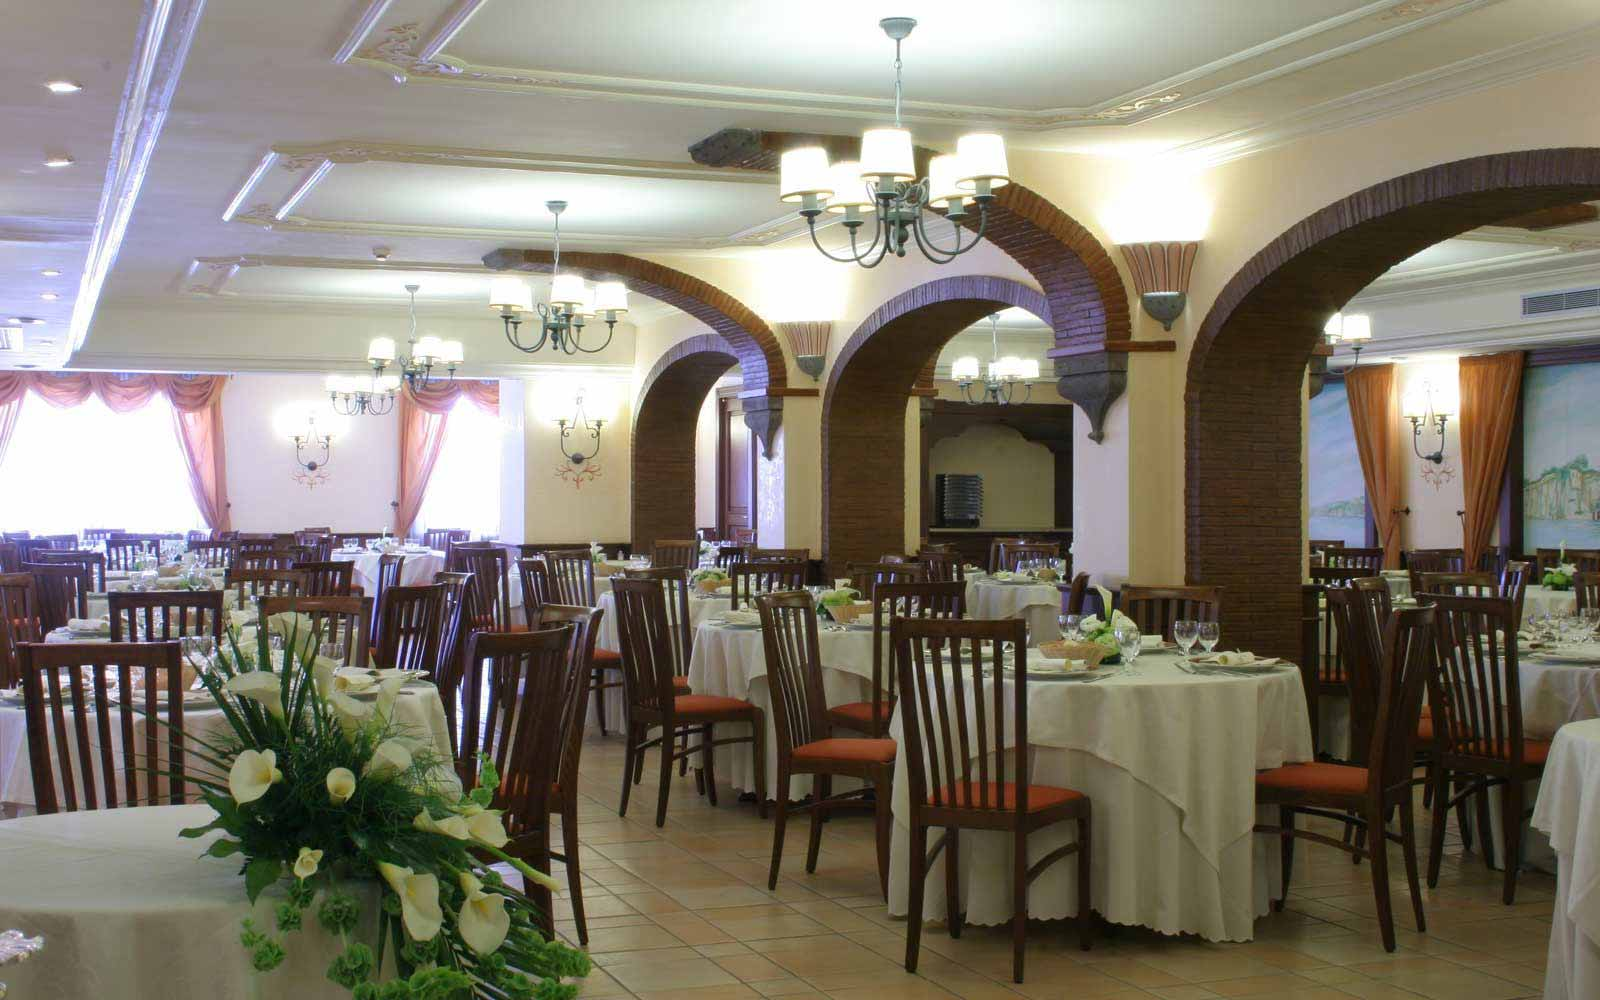 Degli Archi restaurant at Hotel Michelangelo